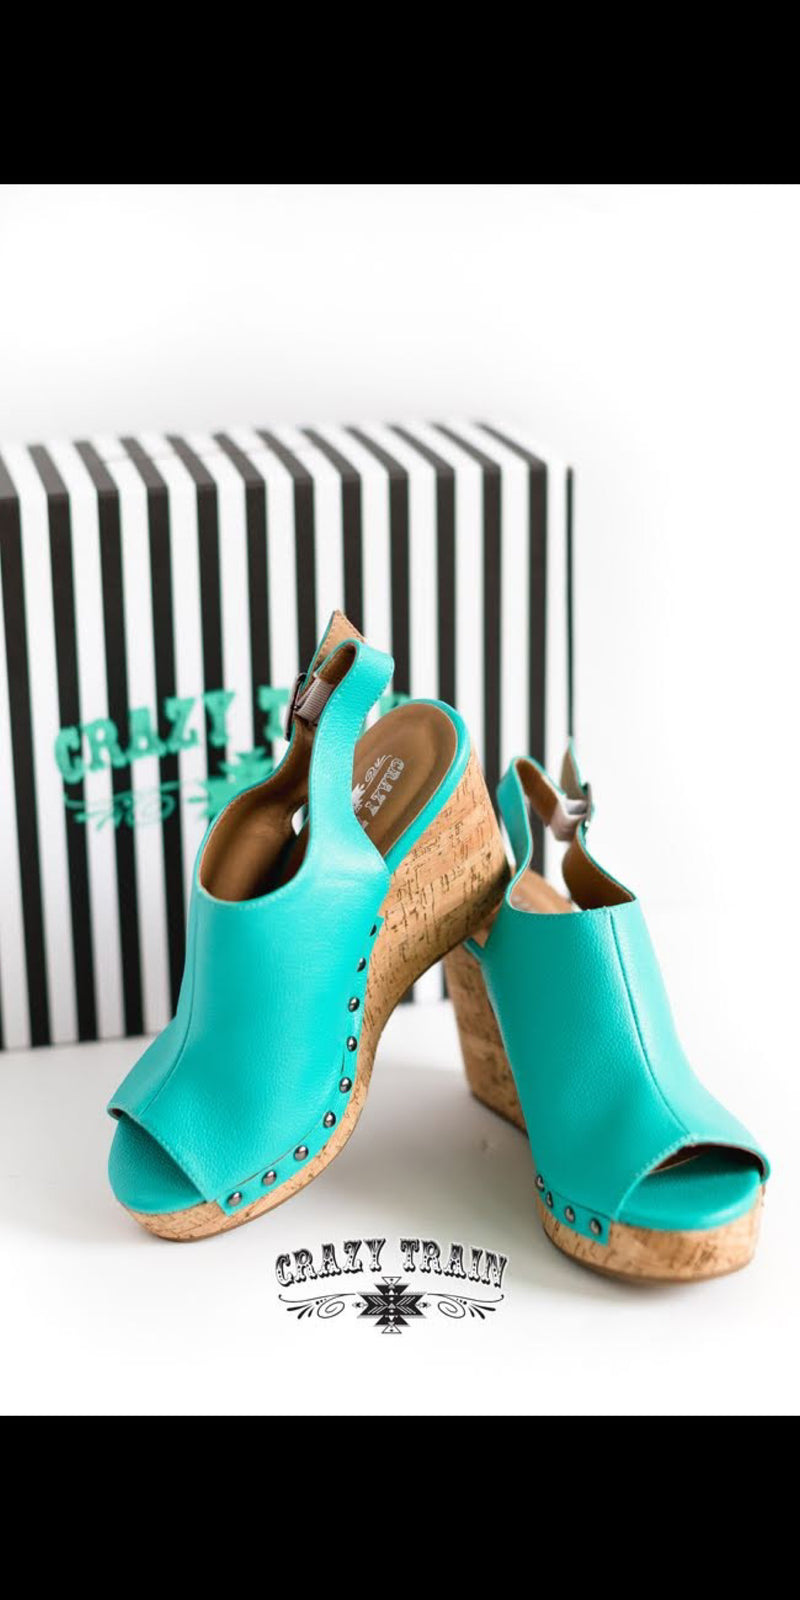 Showdown Turquoise Wedge Sandals